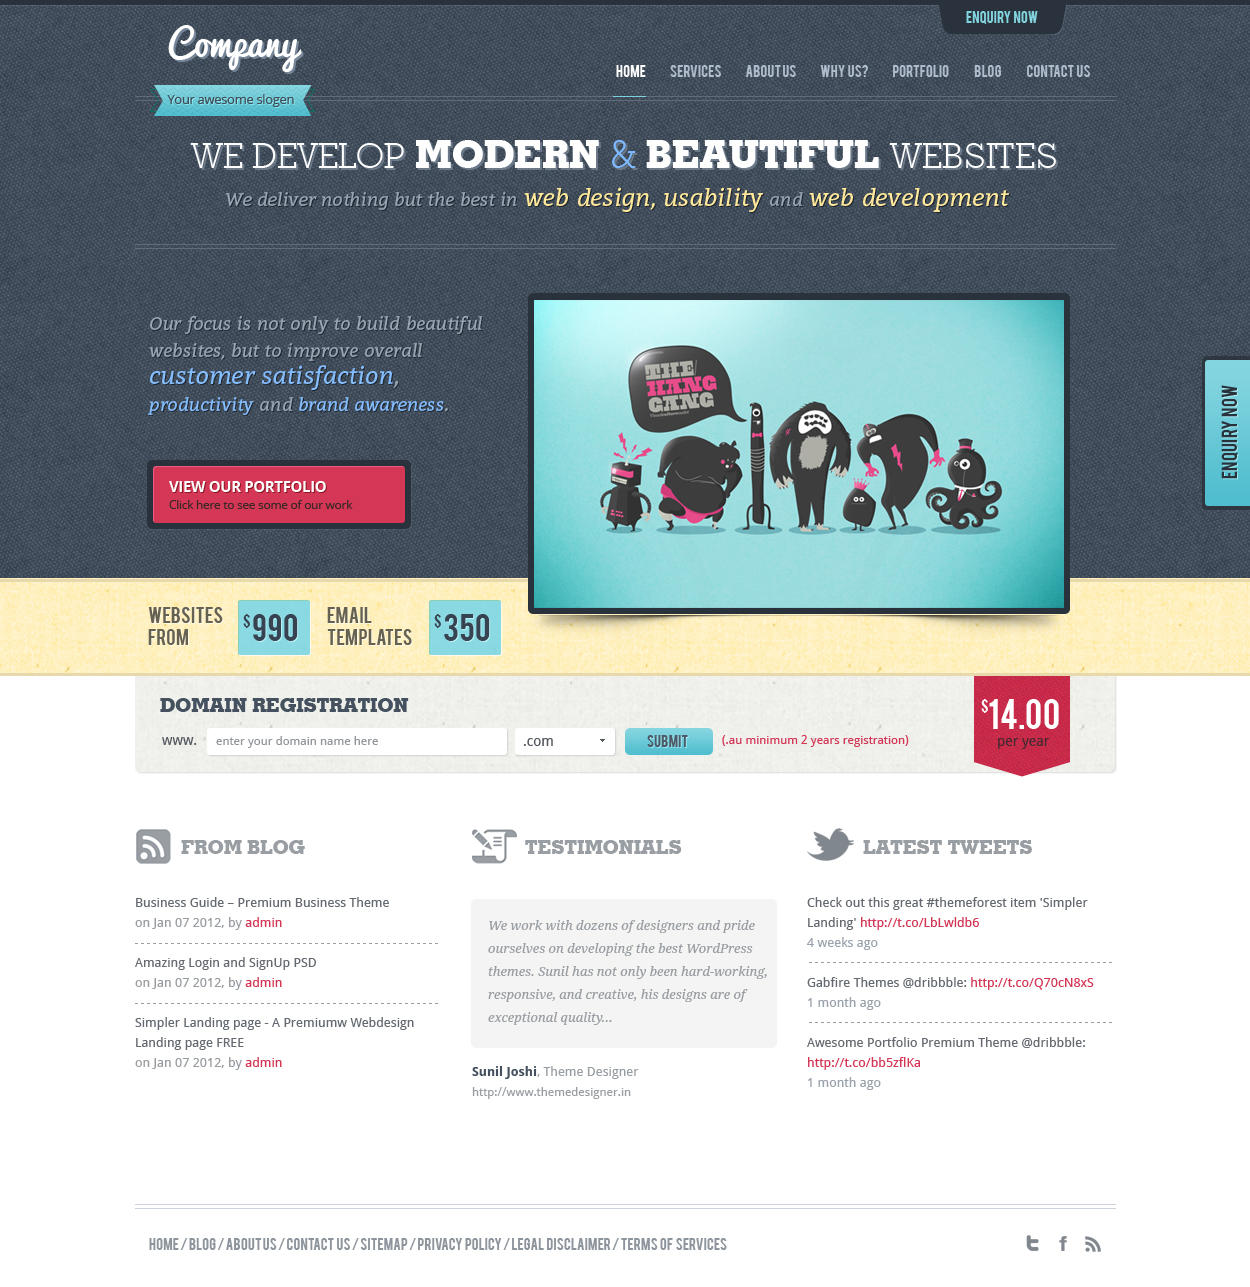 Customized WordPress Theme by VictorThemes - 17943